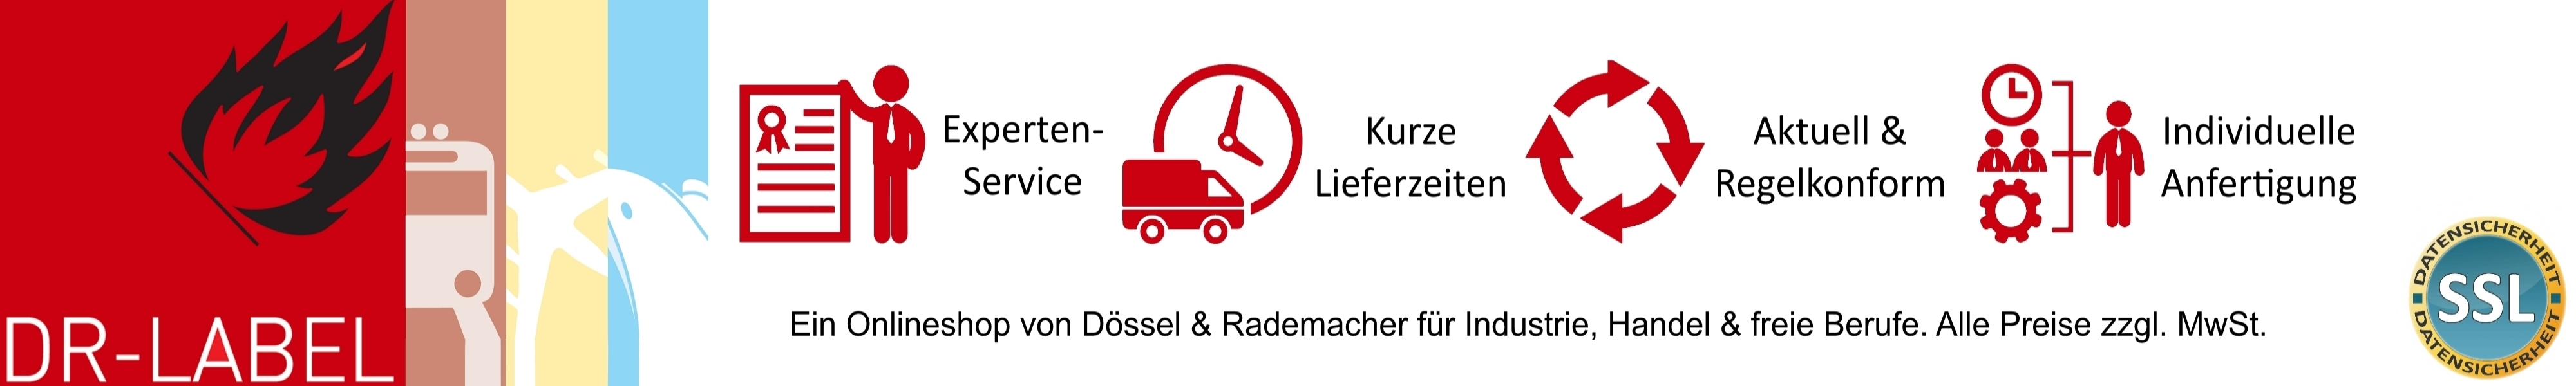 DR-Label-Logo